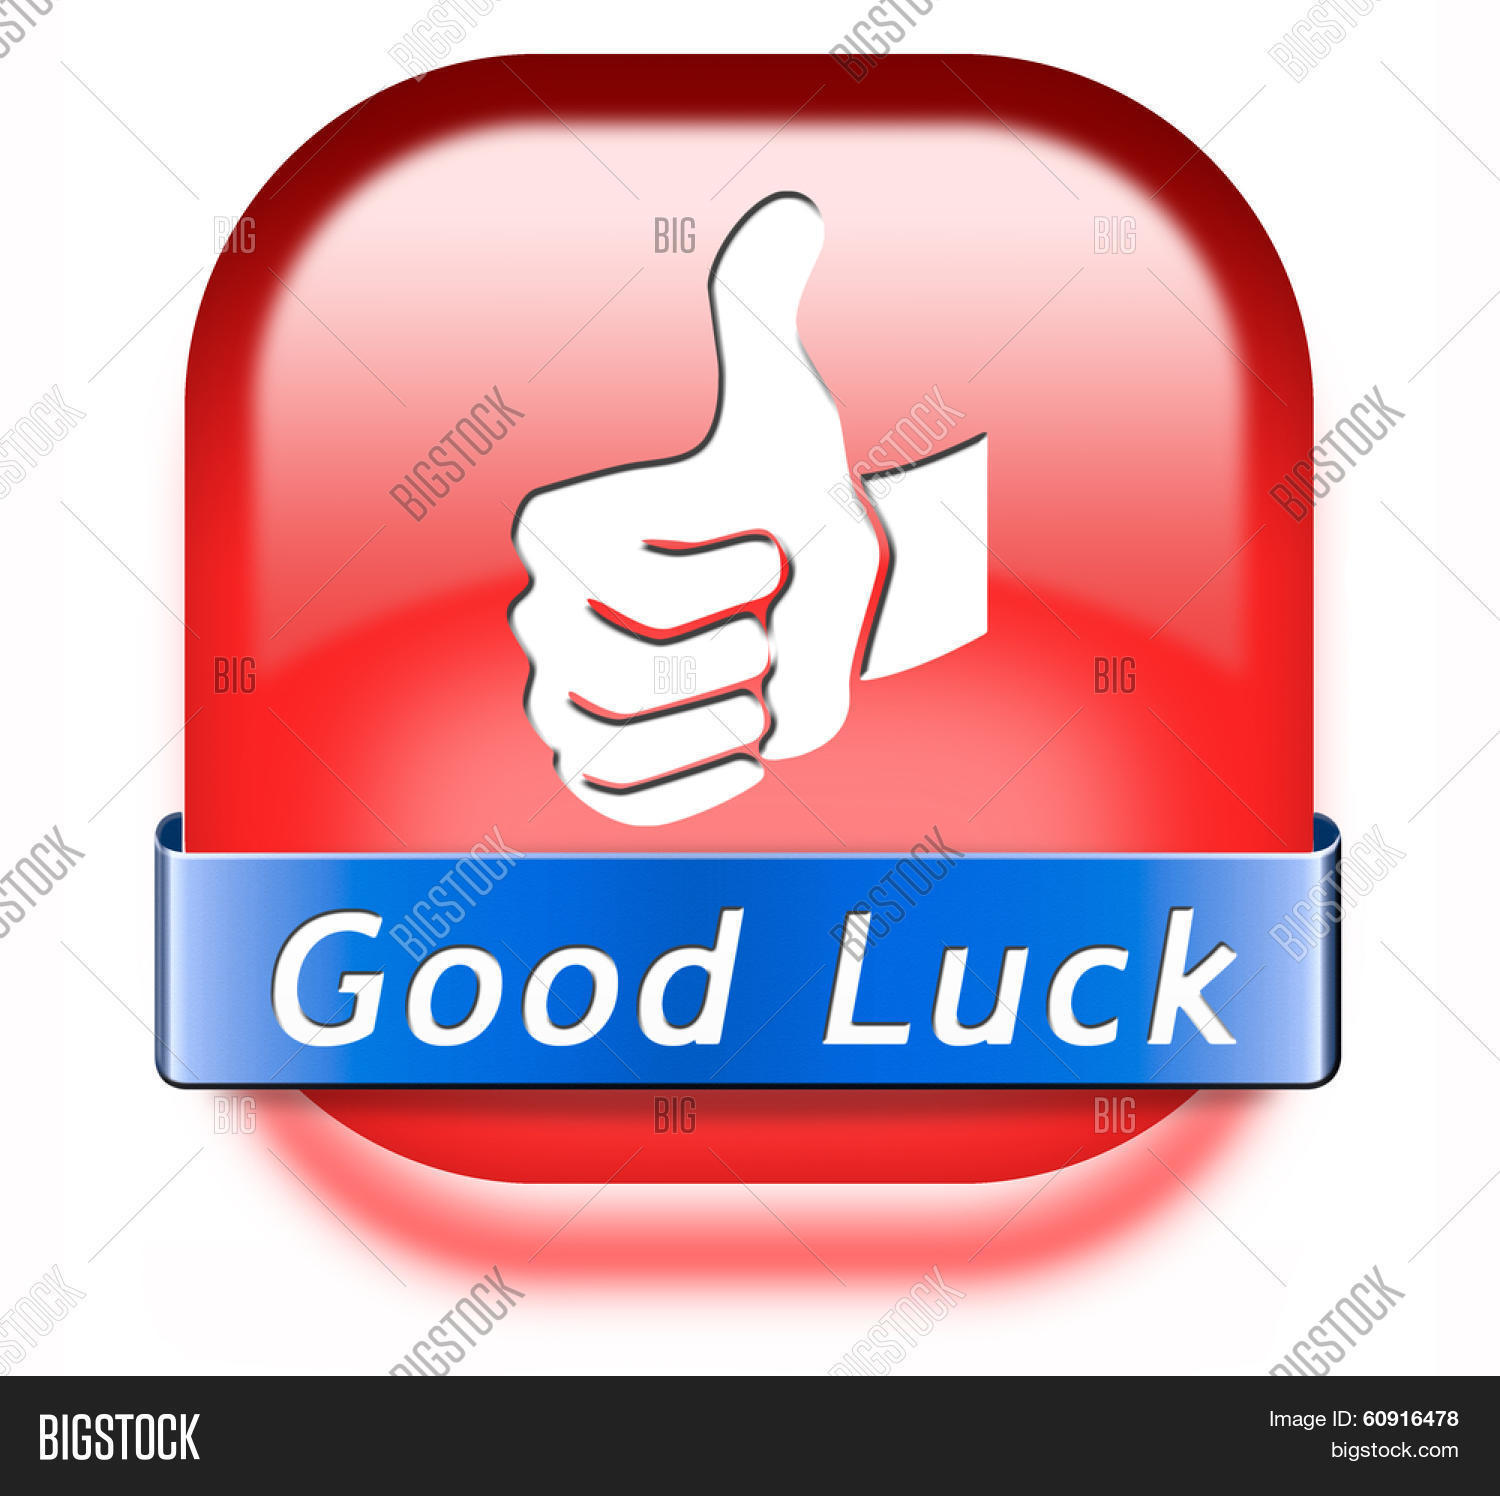 Good Luck Best Wishes Image Photo Free Trial Bigstock